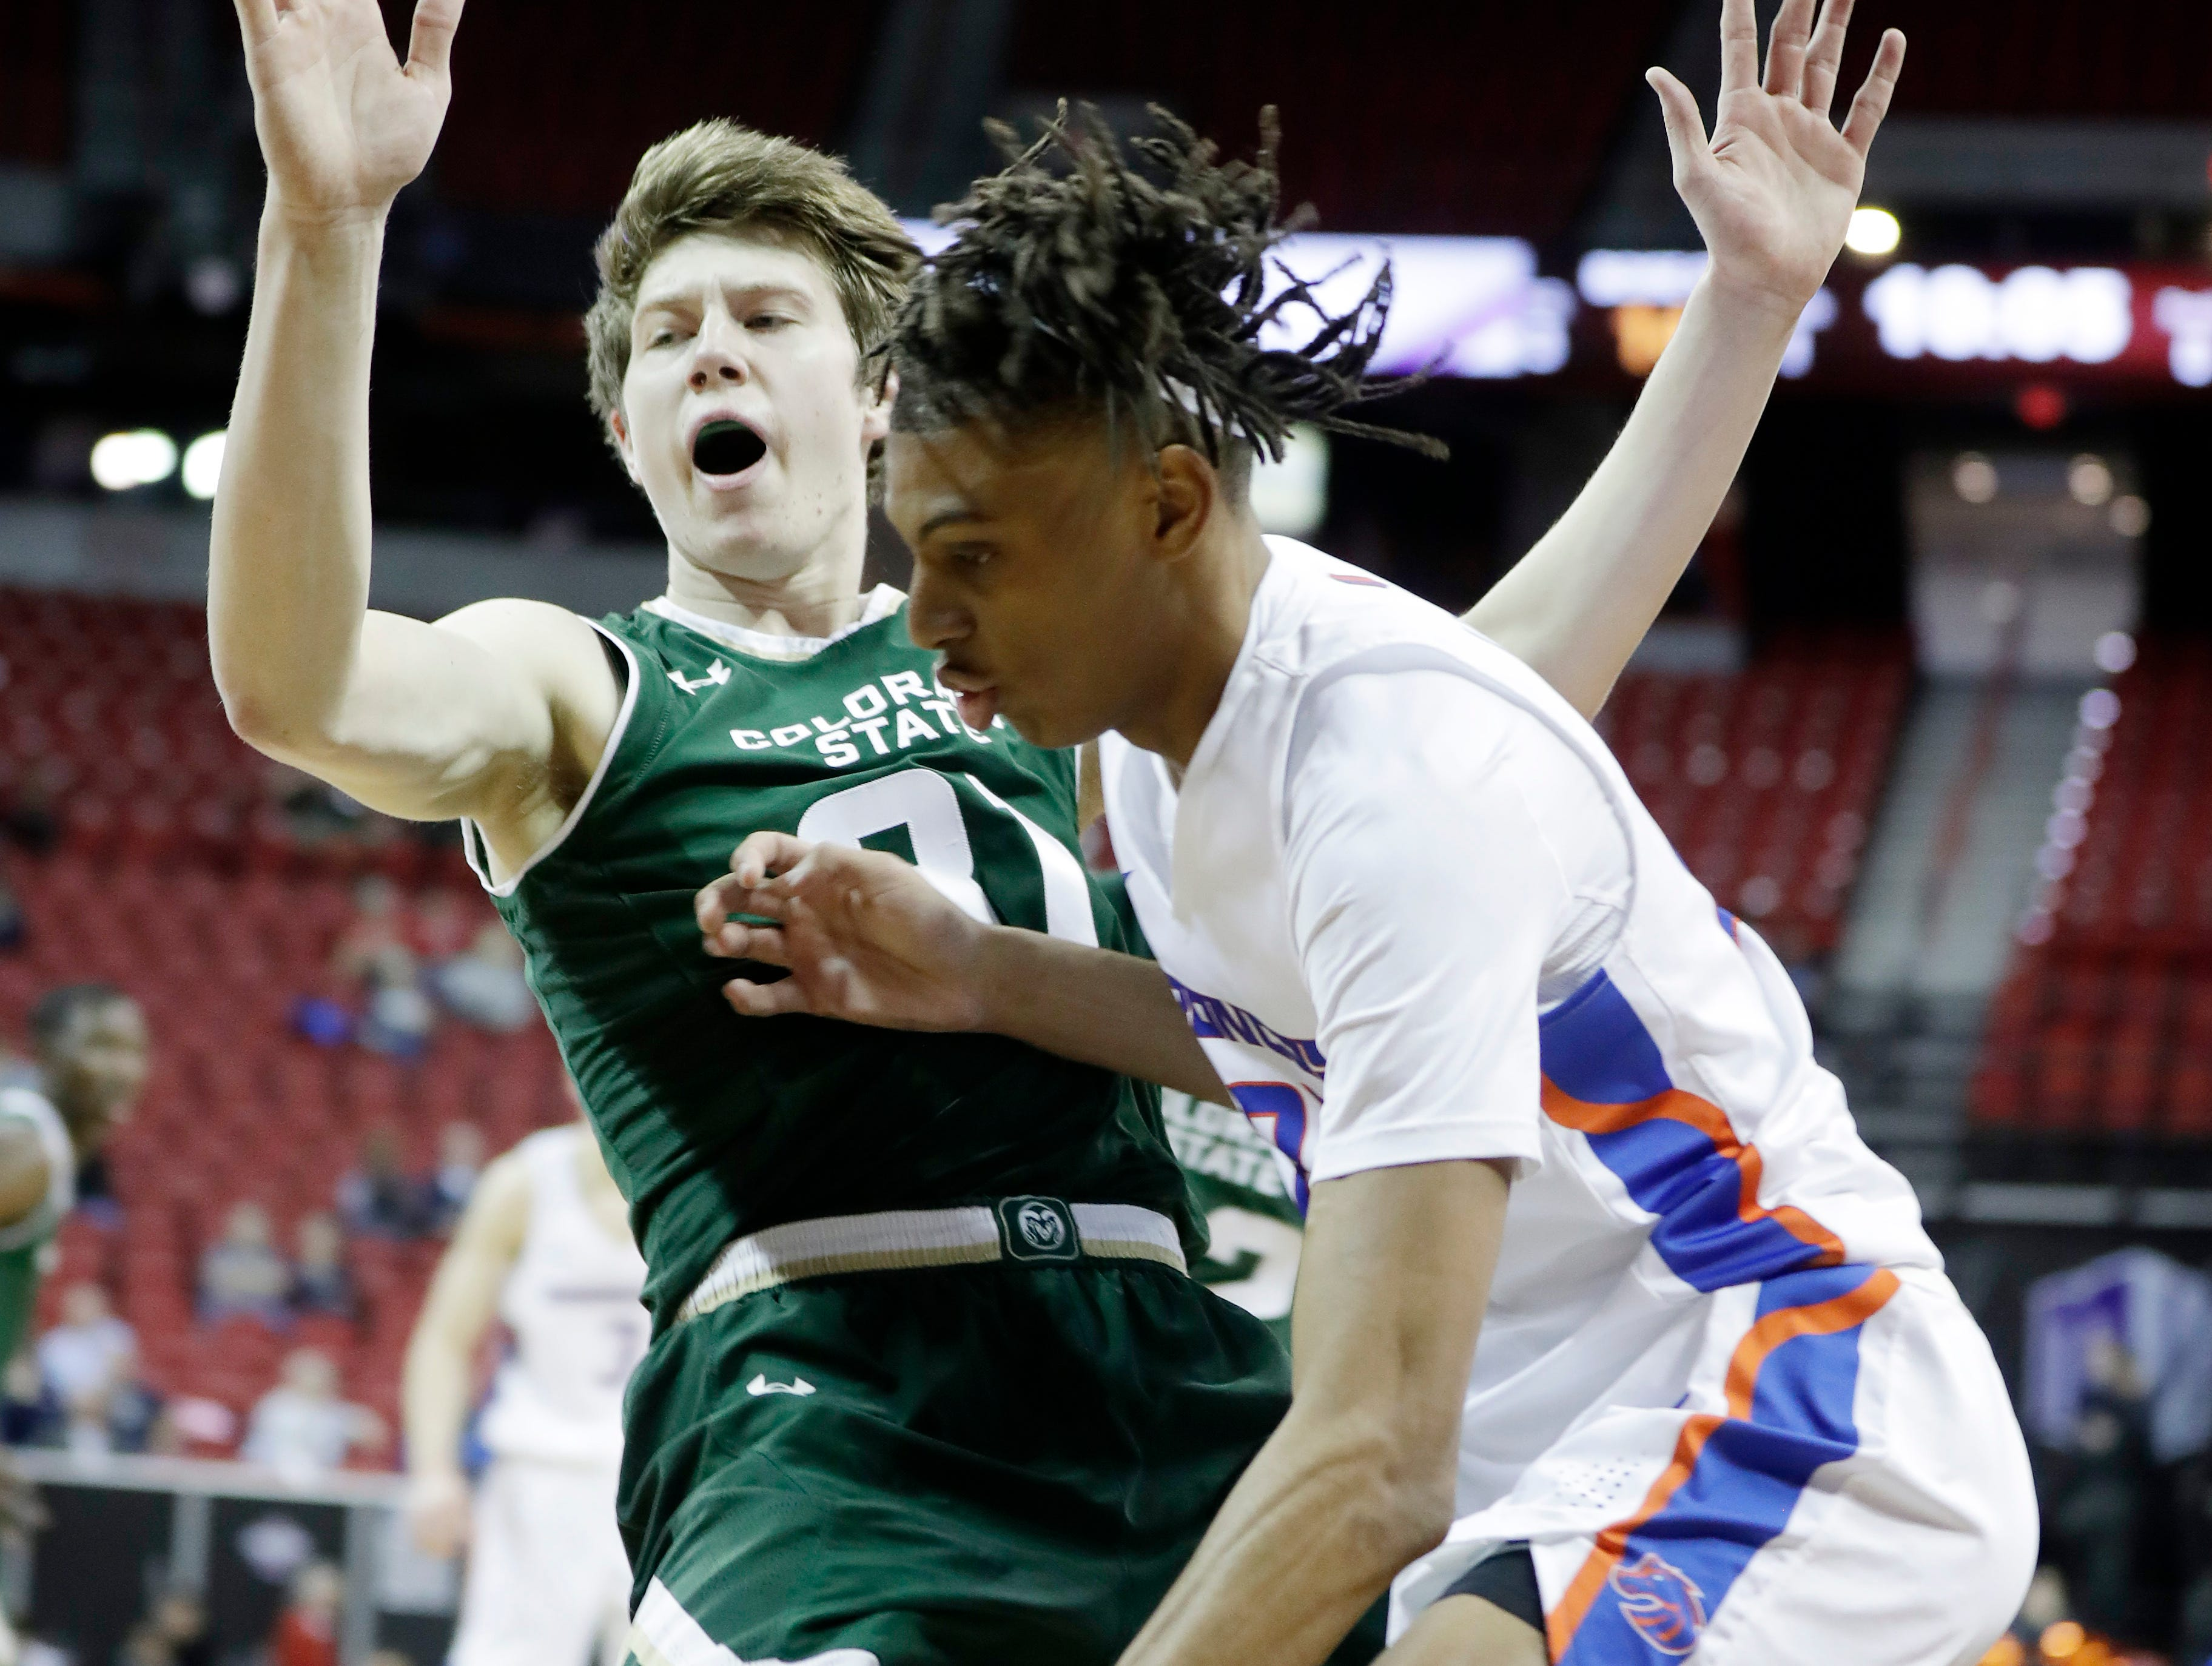 Colorado State's Adam Thistlewood (31) defends against a drive from Boise State's Derrick Alston during the first half of an NCAA college basketball game in the Mountain West Conference tournament, Wednesday, March 13, 2019, in Las Vegas.